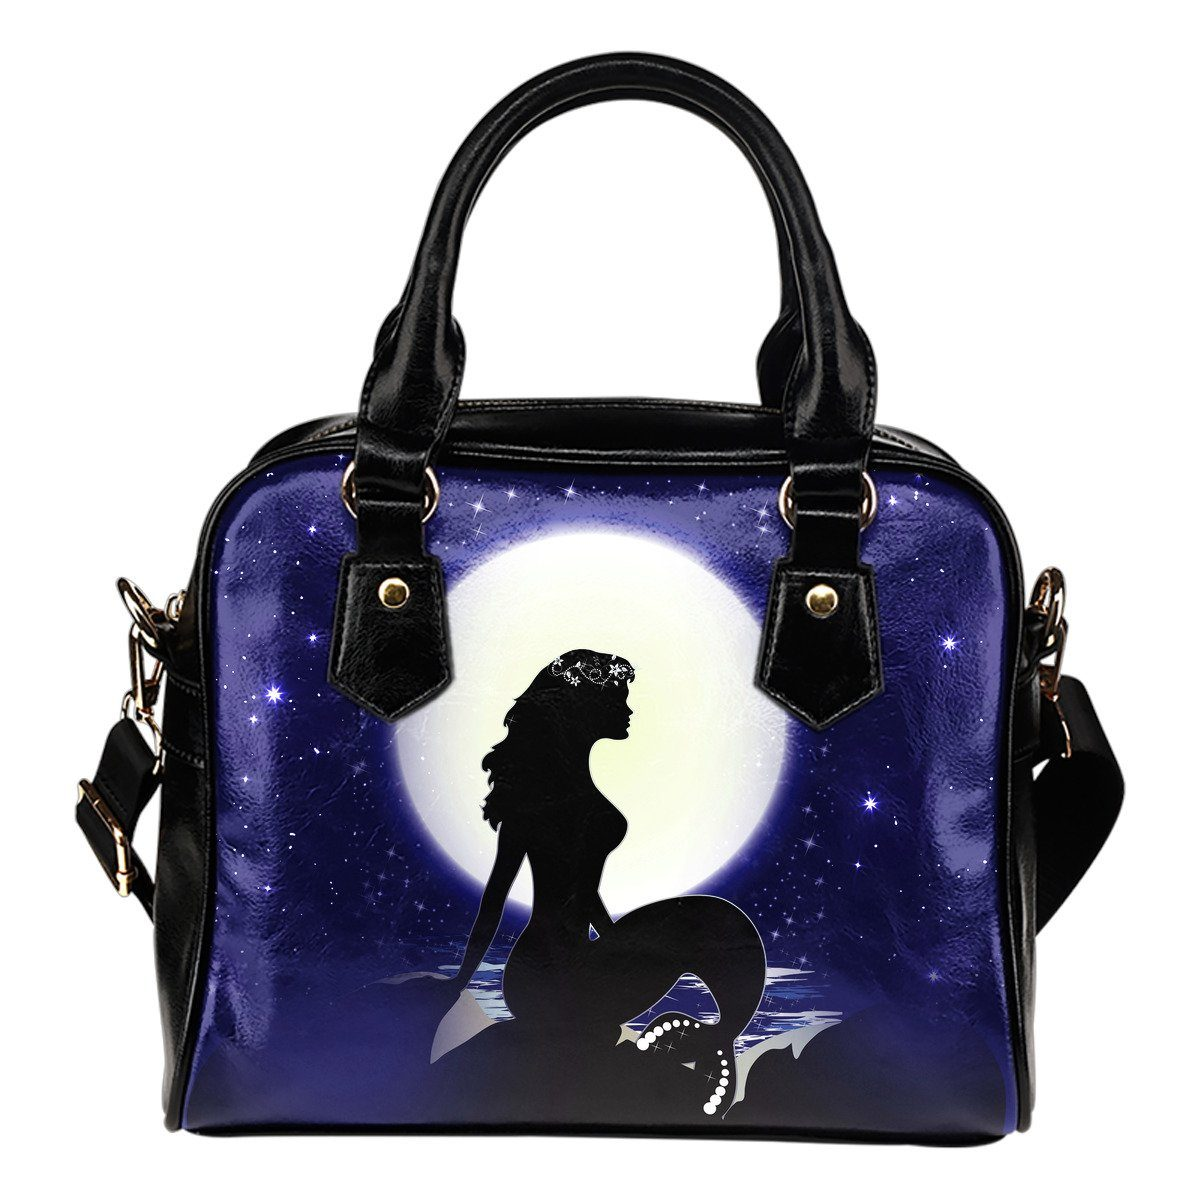 Mermaid Moon Shoulder Handbag Mermaid Purses